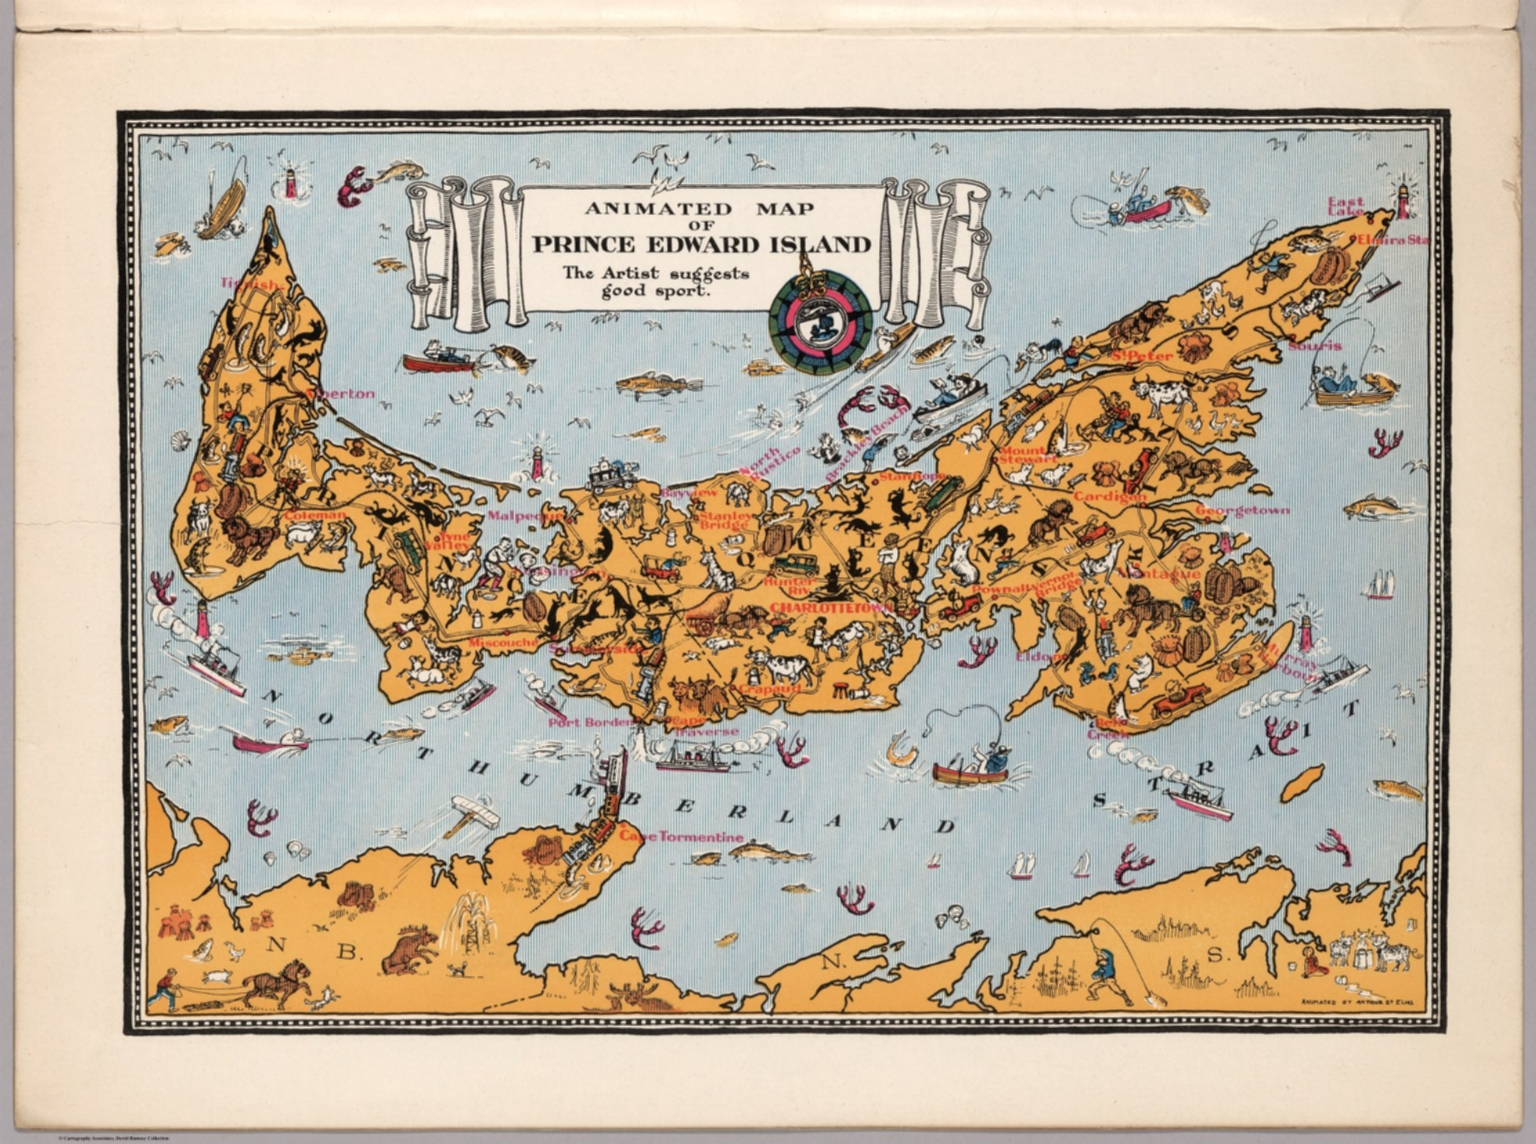 1929 PEI old map - Animated Map of Prince Edward Island